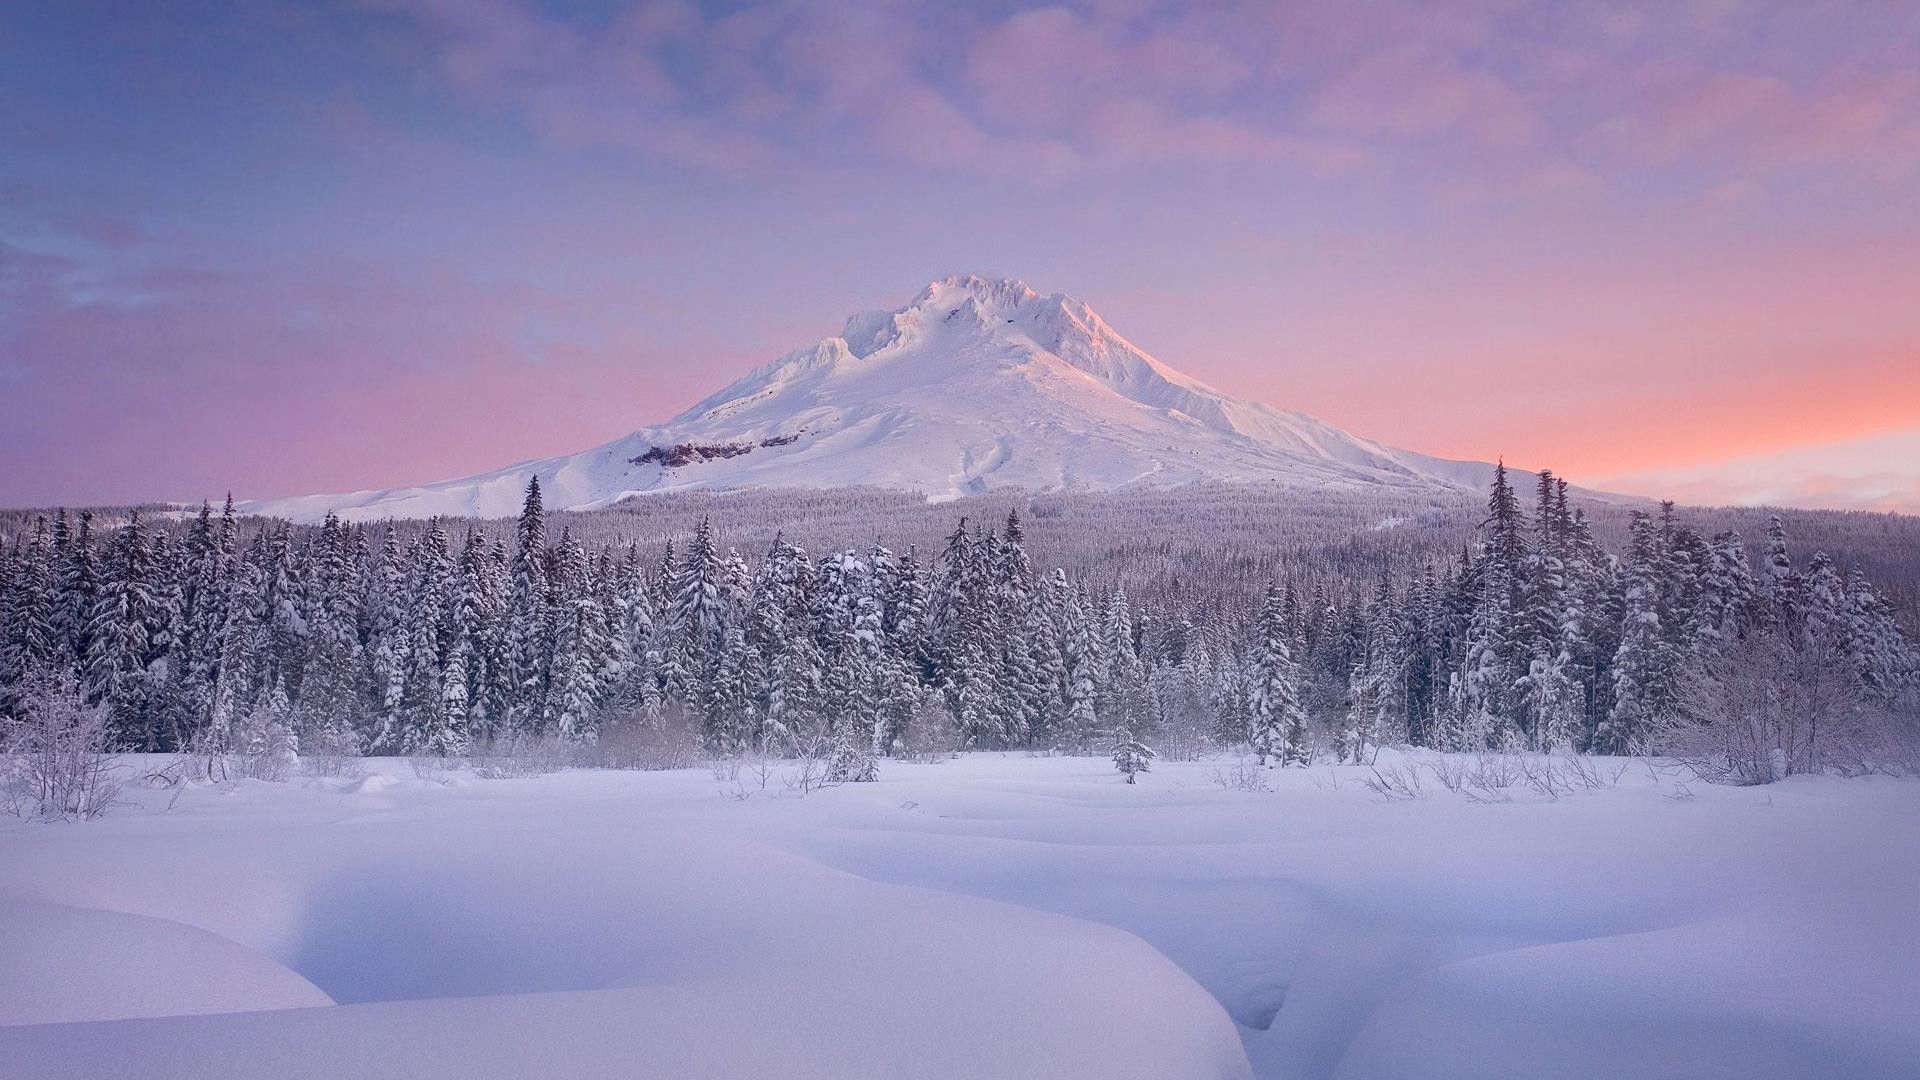 Charming winter scenery and mountain snow background wide  wallpapers:1280×800,1440×900,1680×1050